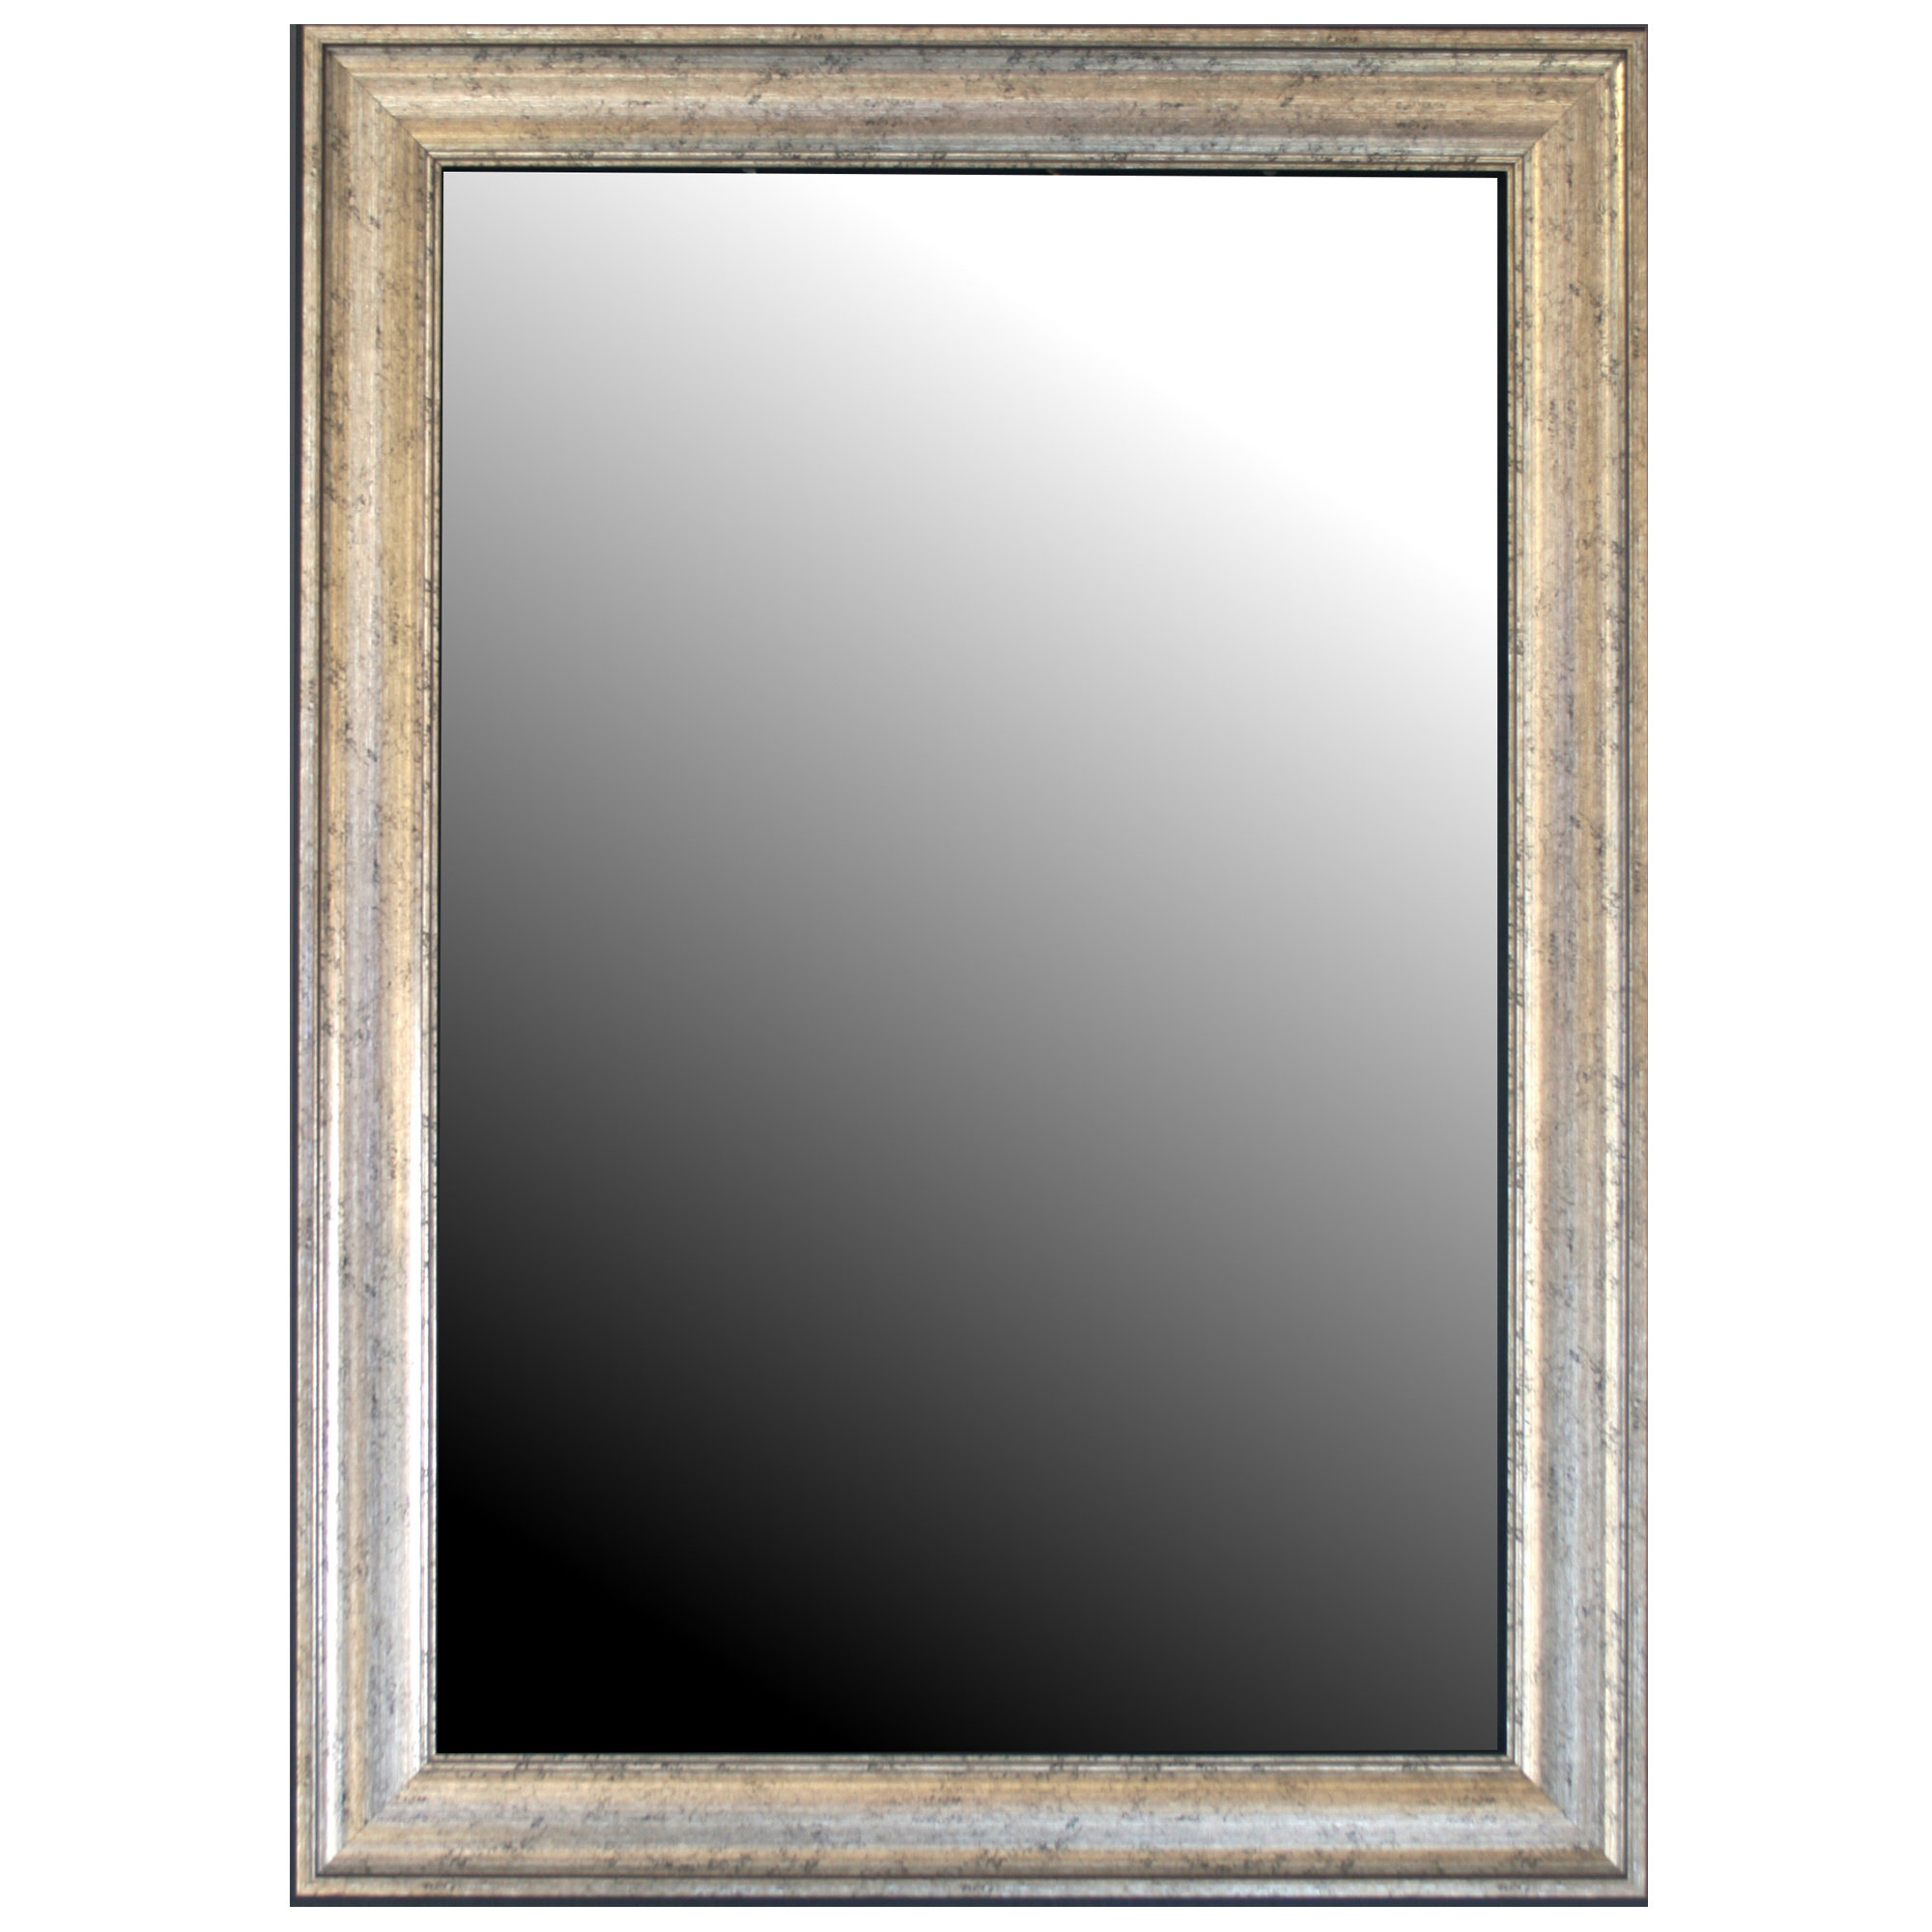 Curren Vintage Beveled Silver Wall Mirror for Boyers Wall Mirrors (Image 11 of 30)